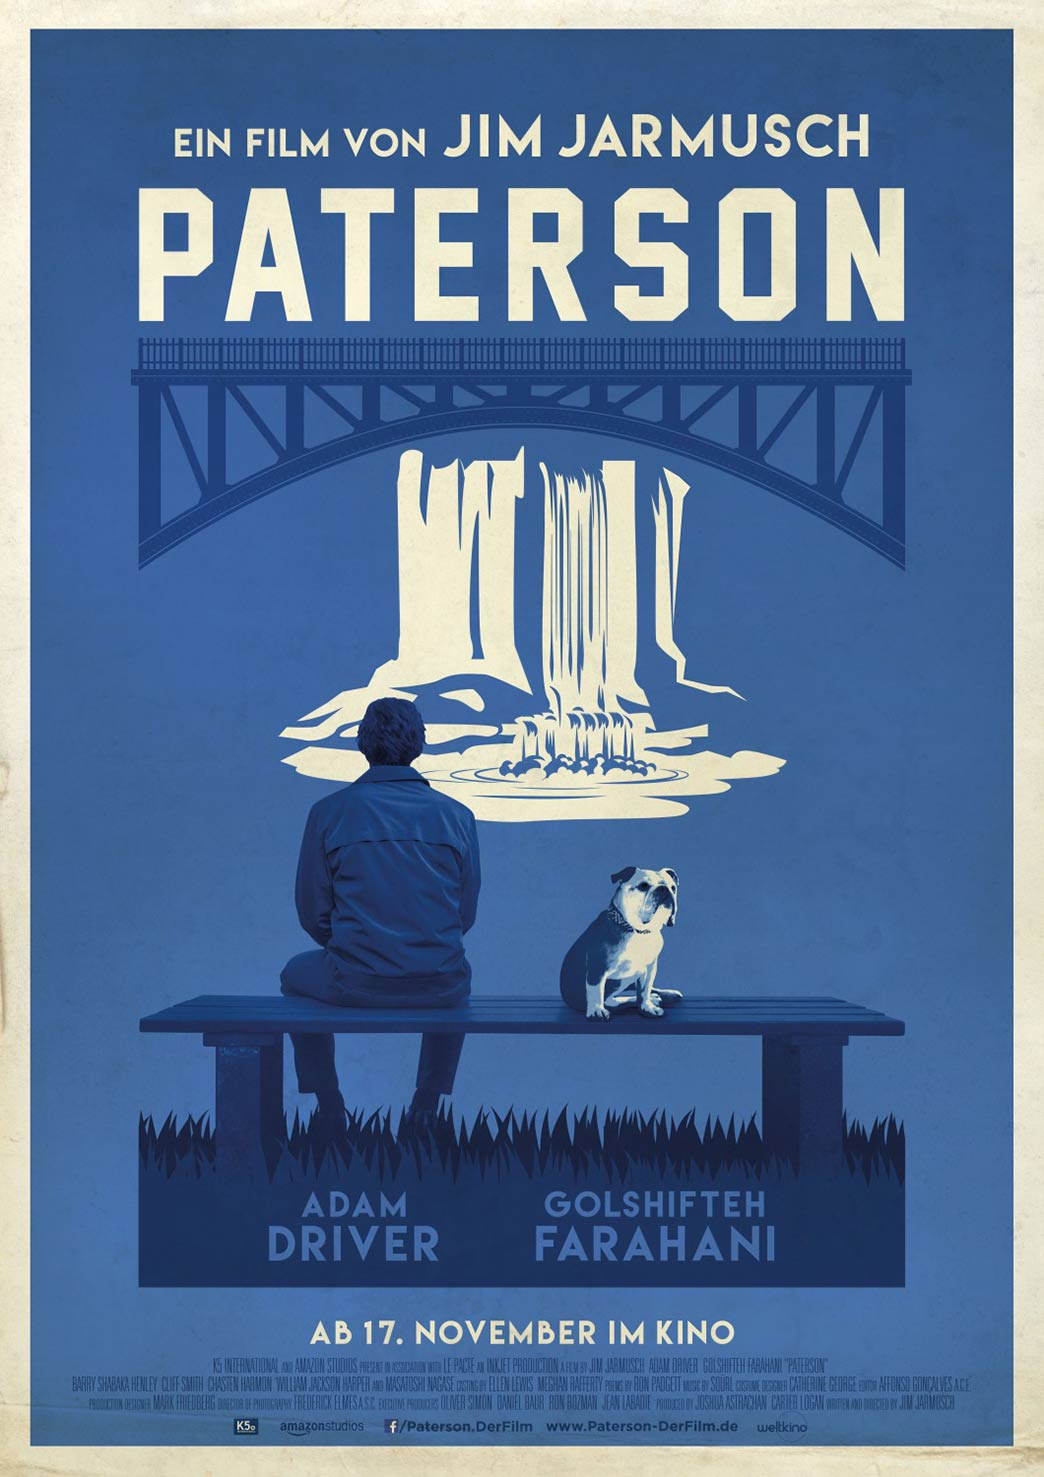 paterson-poster-2.jpg